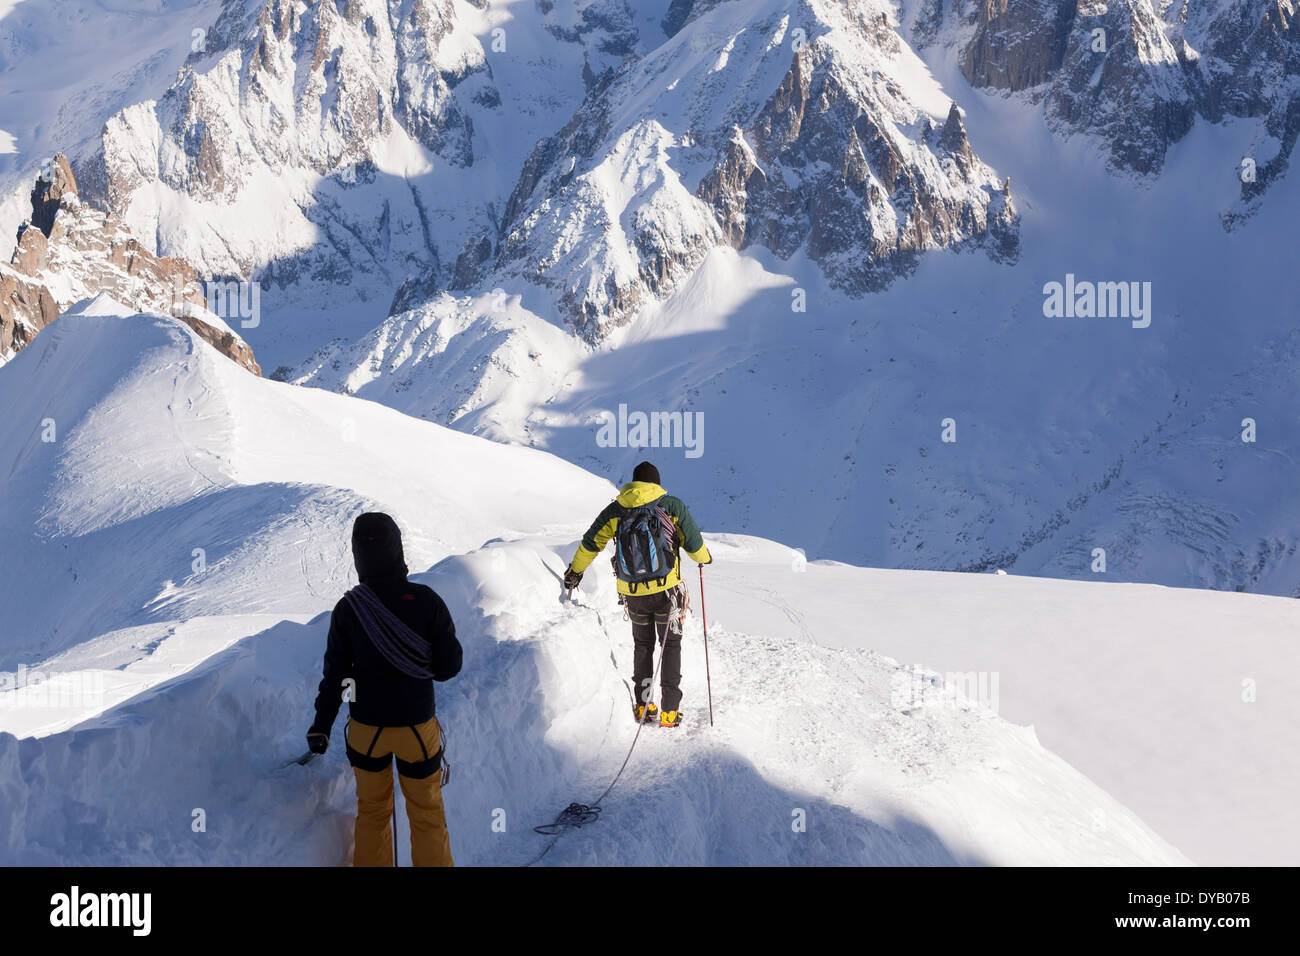 Mountaineers descend from a lookout point on the Aiguille Du Midi (3842m) mountain top above Chamonix Mont-Blanc. Stock Photo